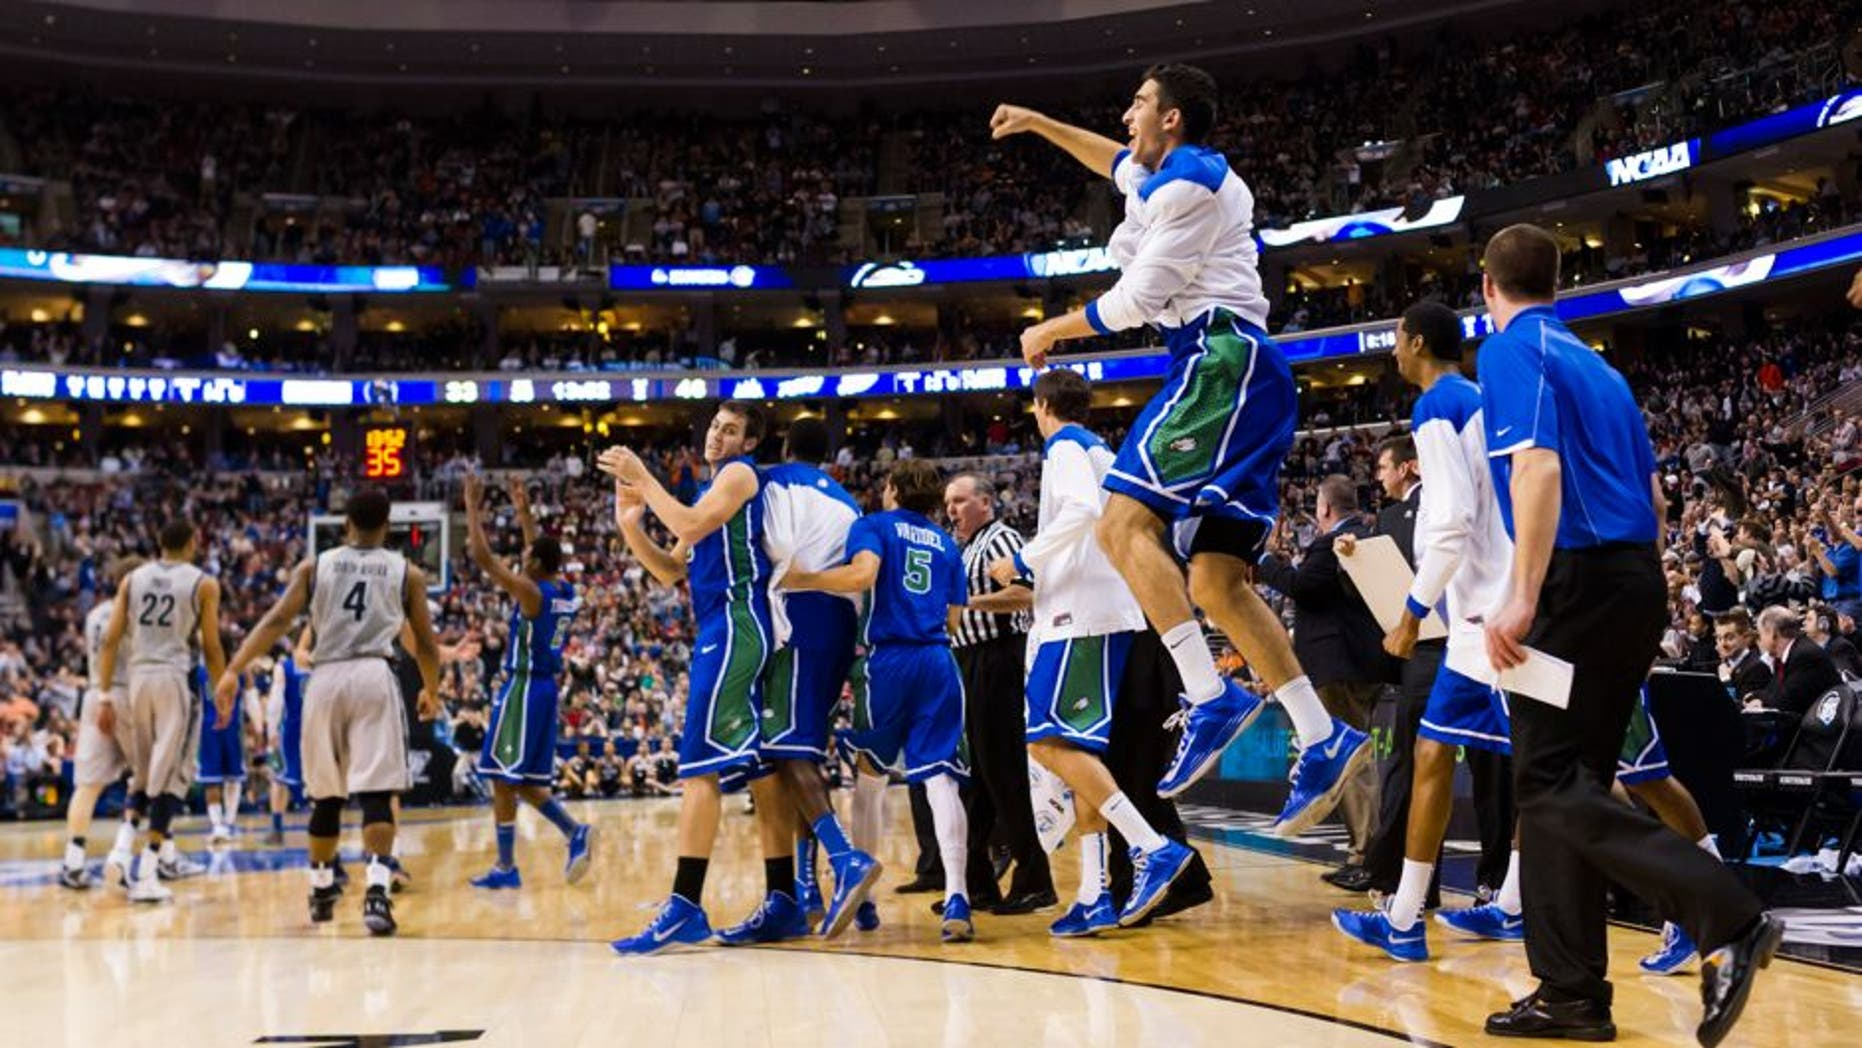 Mar 22, 2013; Philadelphia, PA, USA; Florida Gulf Coast Eagles players celebrate ;ate in the second half against the Georgetown Hoyas during the second round of the 2013 NCAA tournament at the Wells Fargo Center. Florida Gulf Coast defeated Georgetown 78-68. Mandatory Credit: Howard Smith-USA TODAY Sports